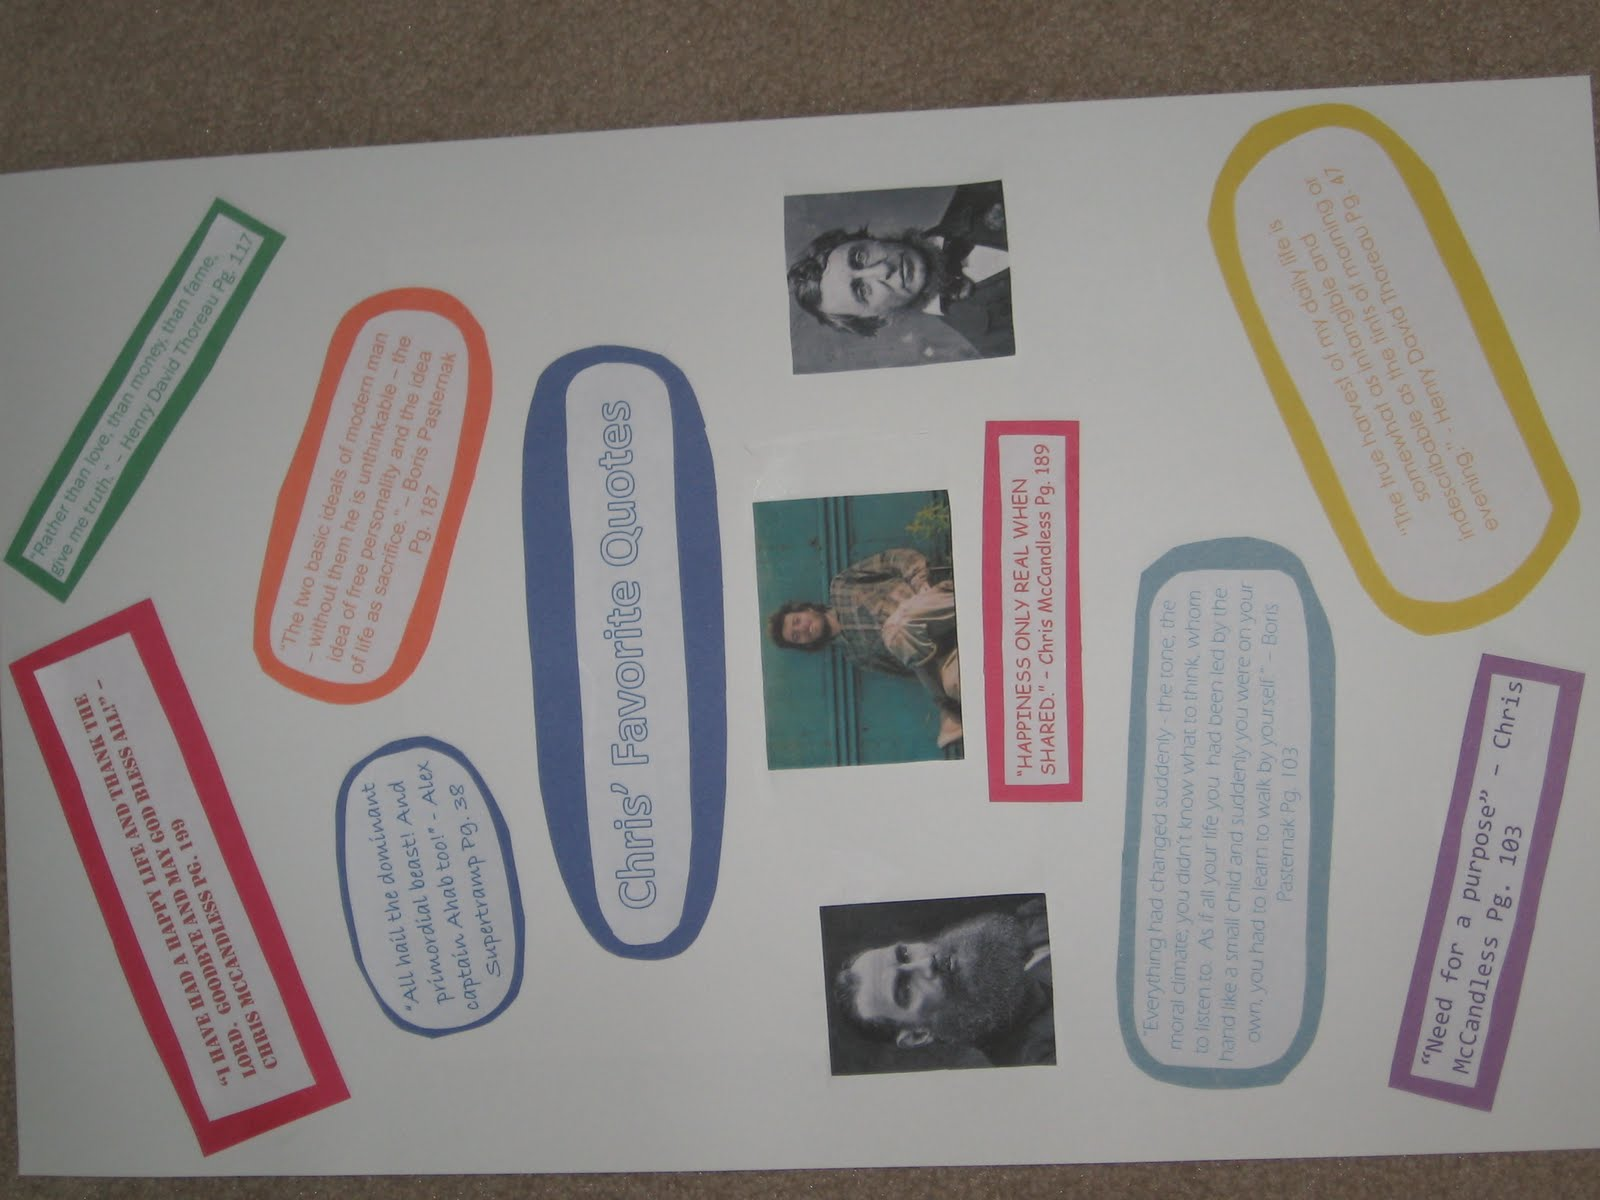 Ashleys Literature Project For Into The Wild Final Assessment